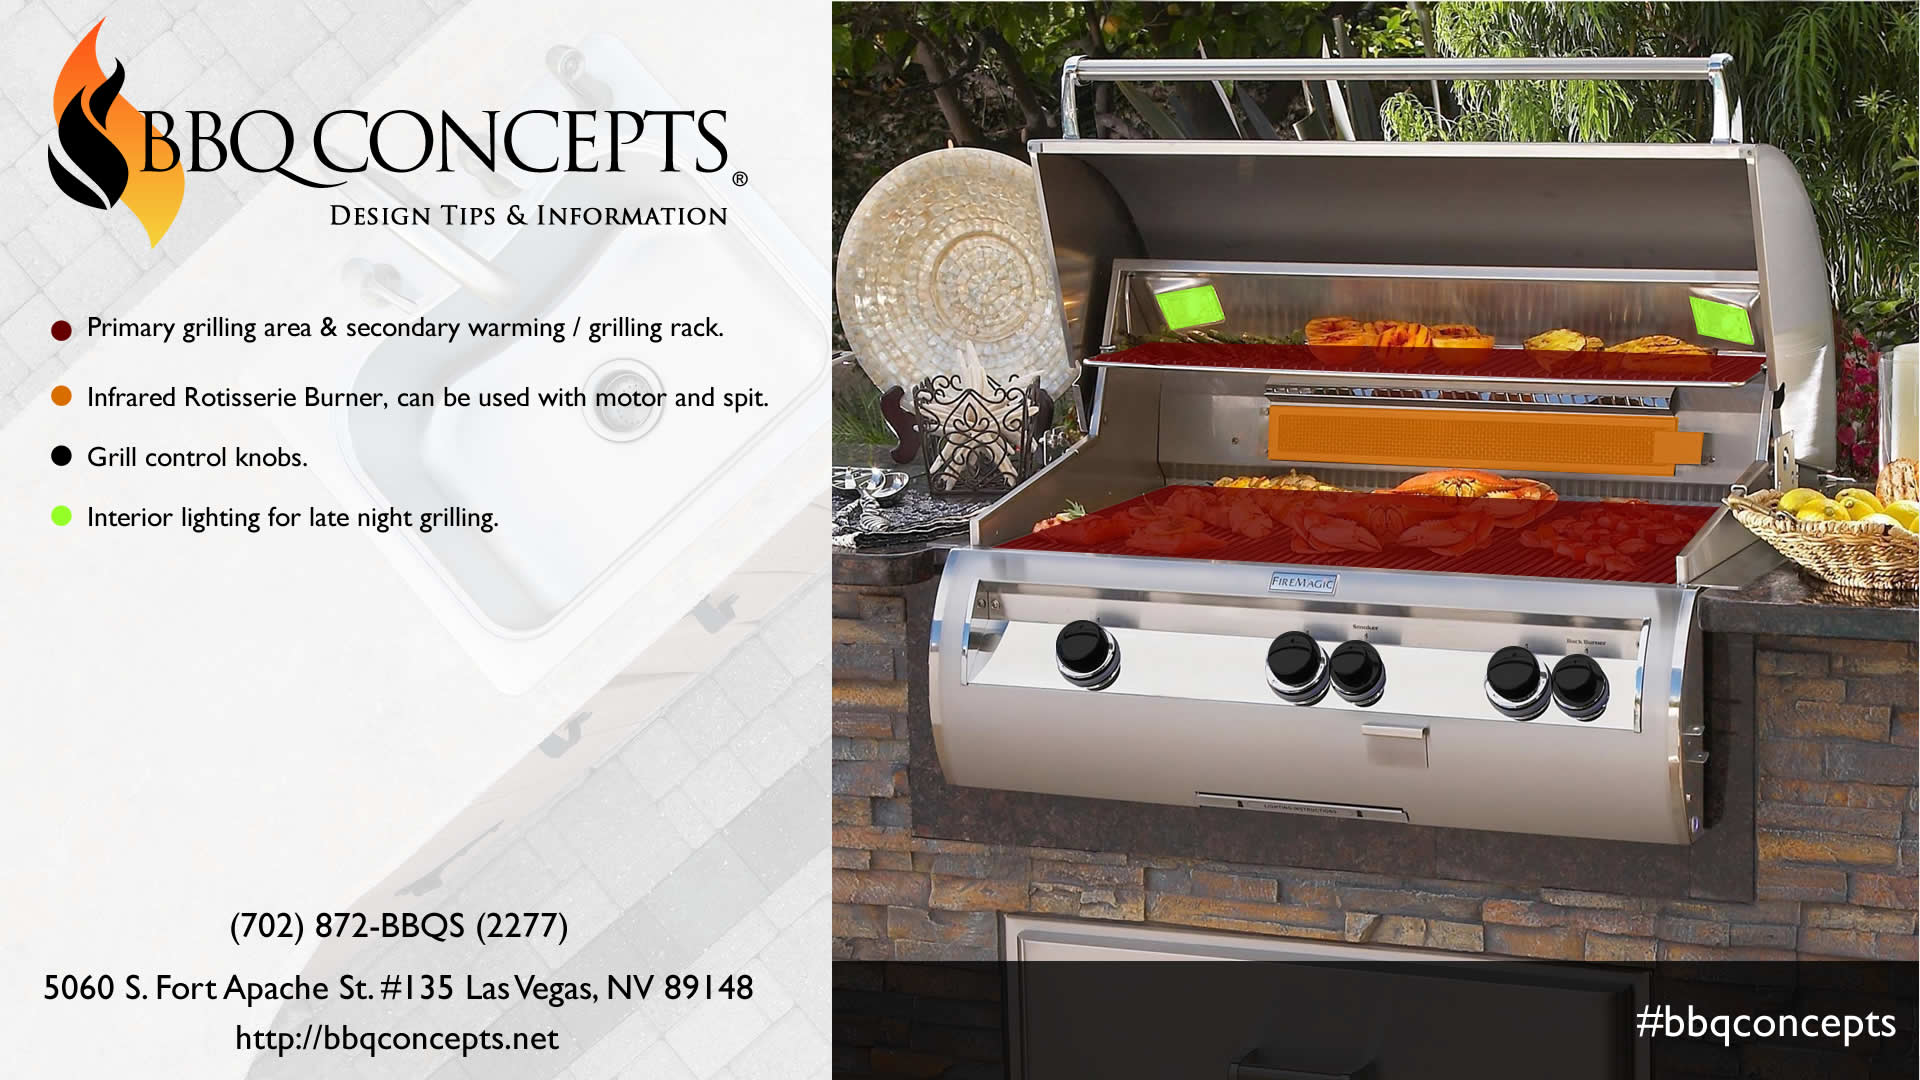 Professional Barbecue Grill Infographic - Grilling Surface and Rear Infrared Rotisserie Diagram